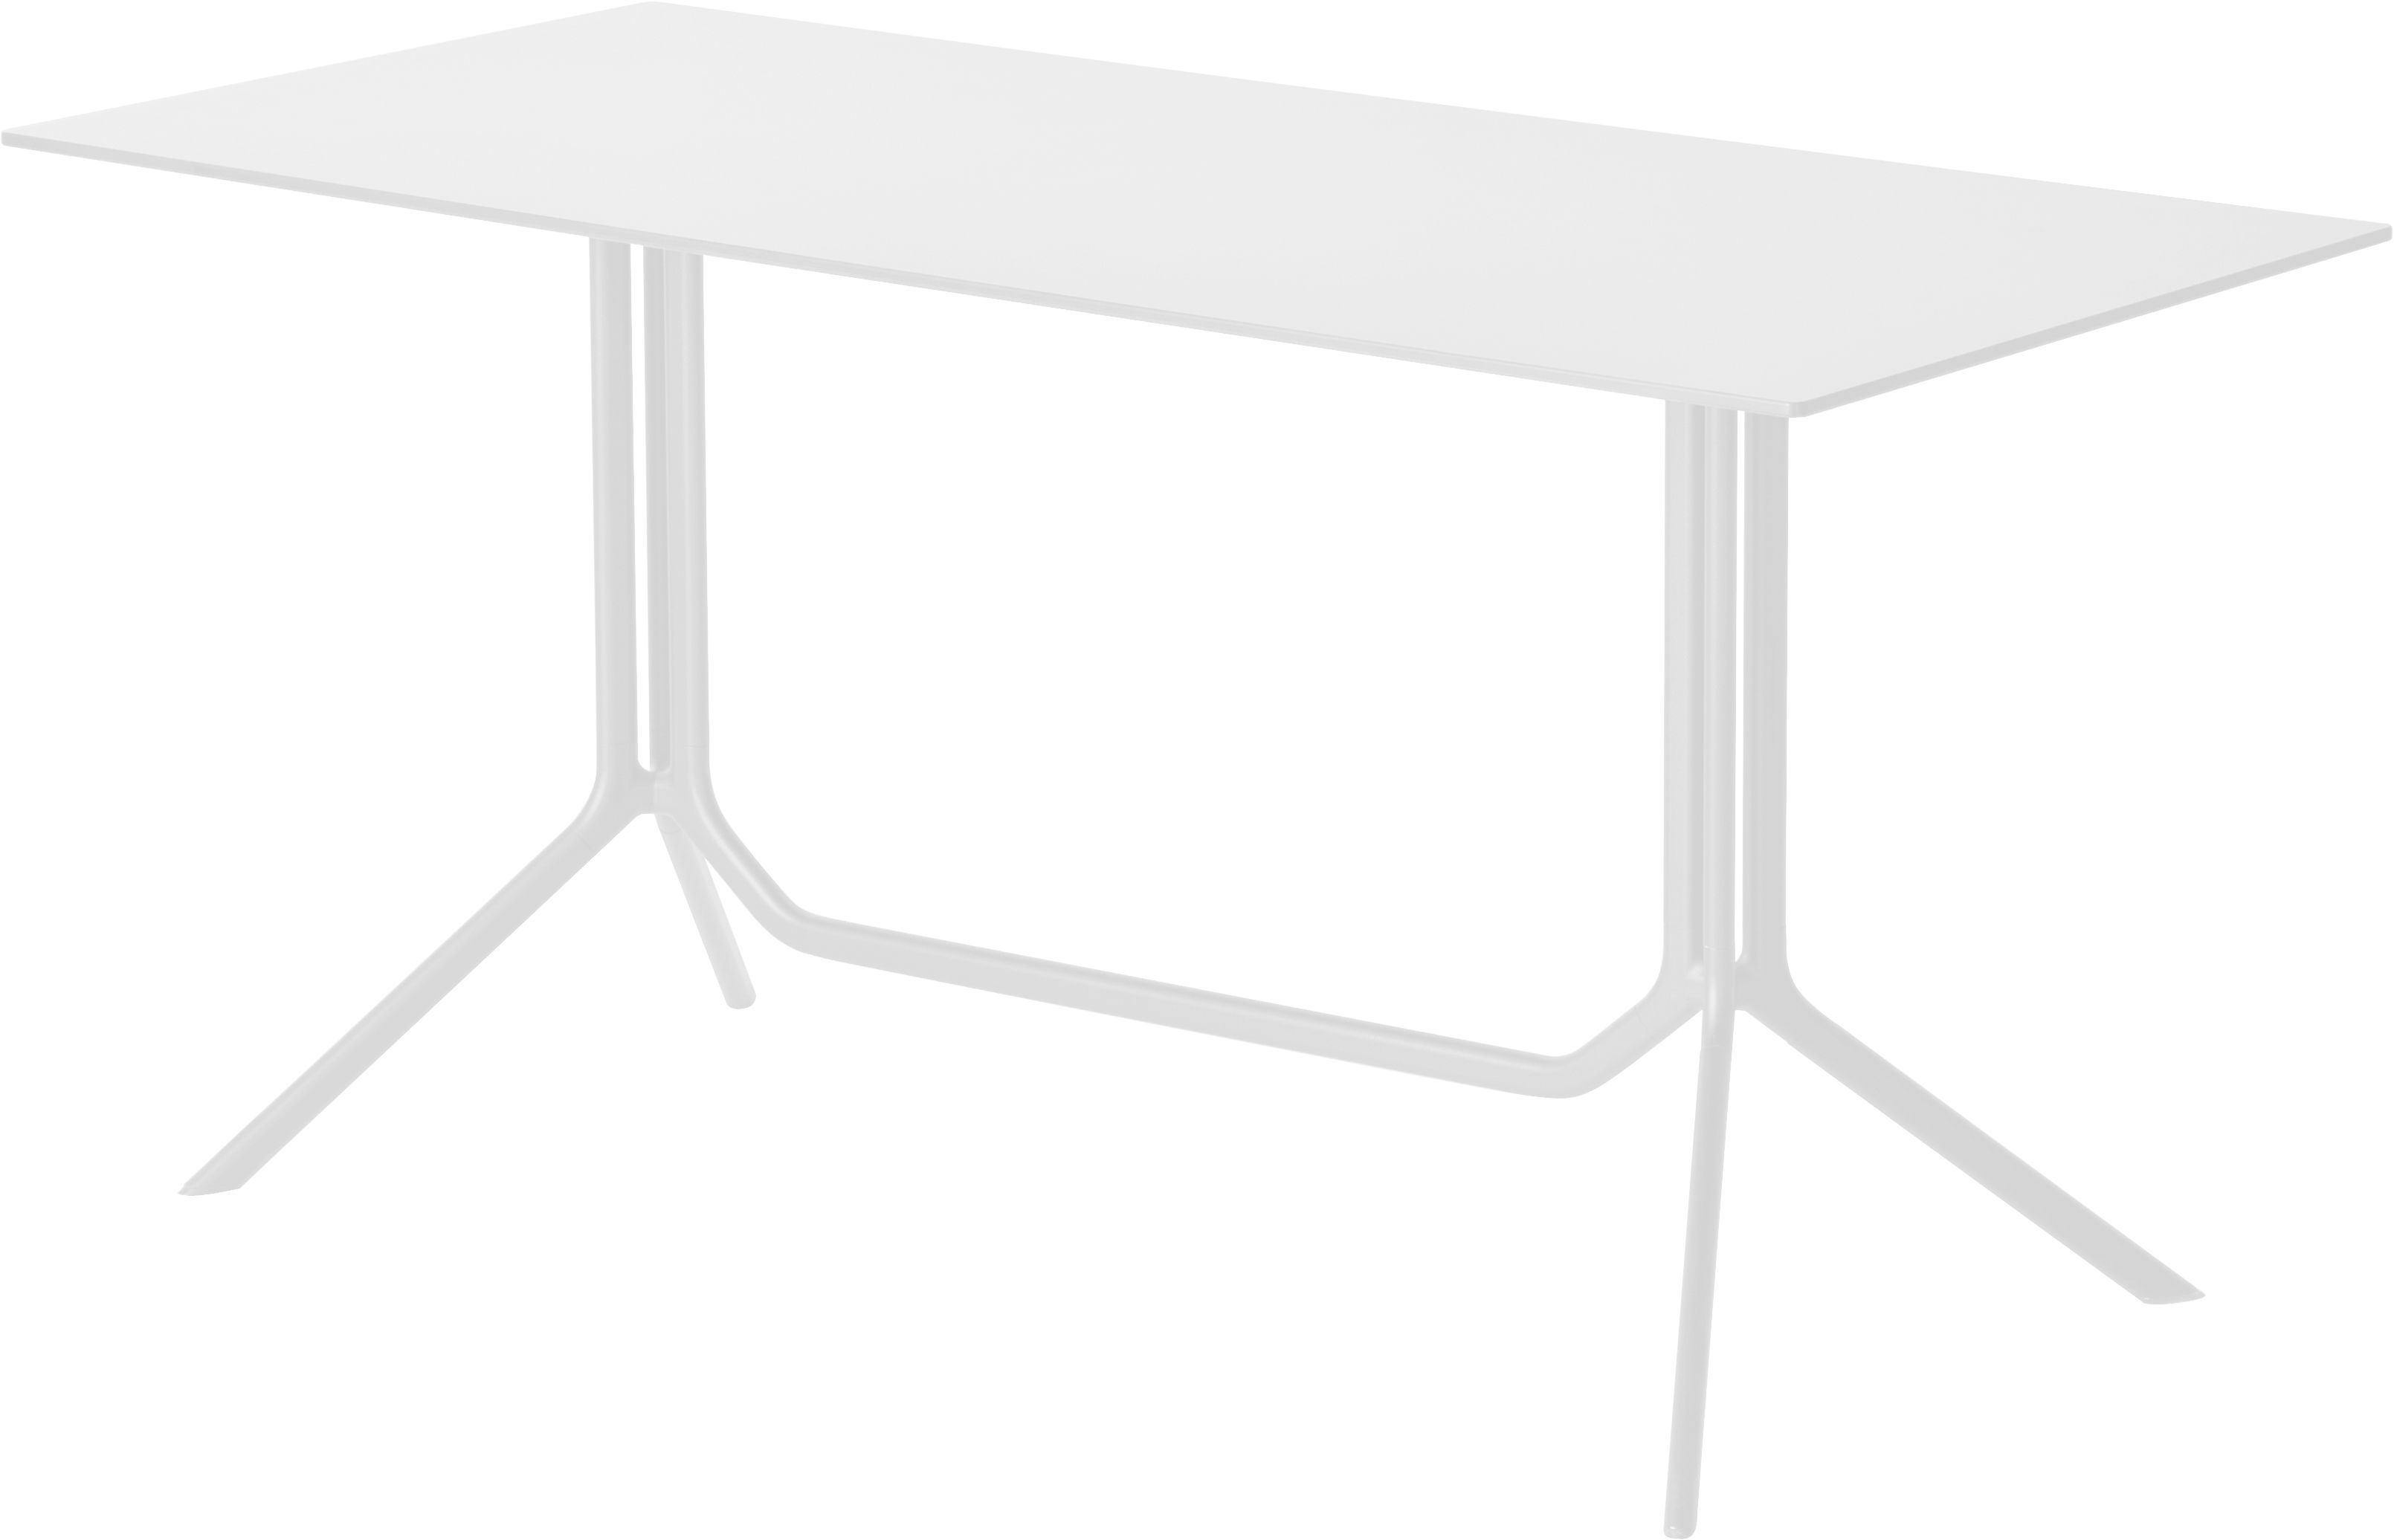 Outdoor - Garden Tables - Poule double Foldable table - 150 x 70 cm - Foldable top by Kristalia - Pure white laminated - Lacquered aluminium, Stratified